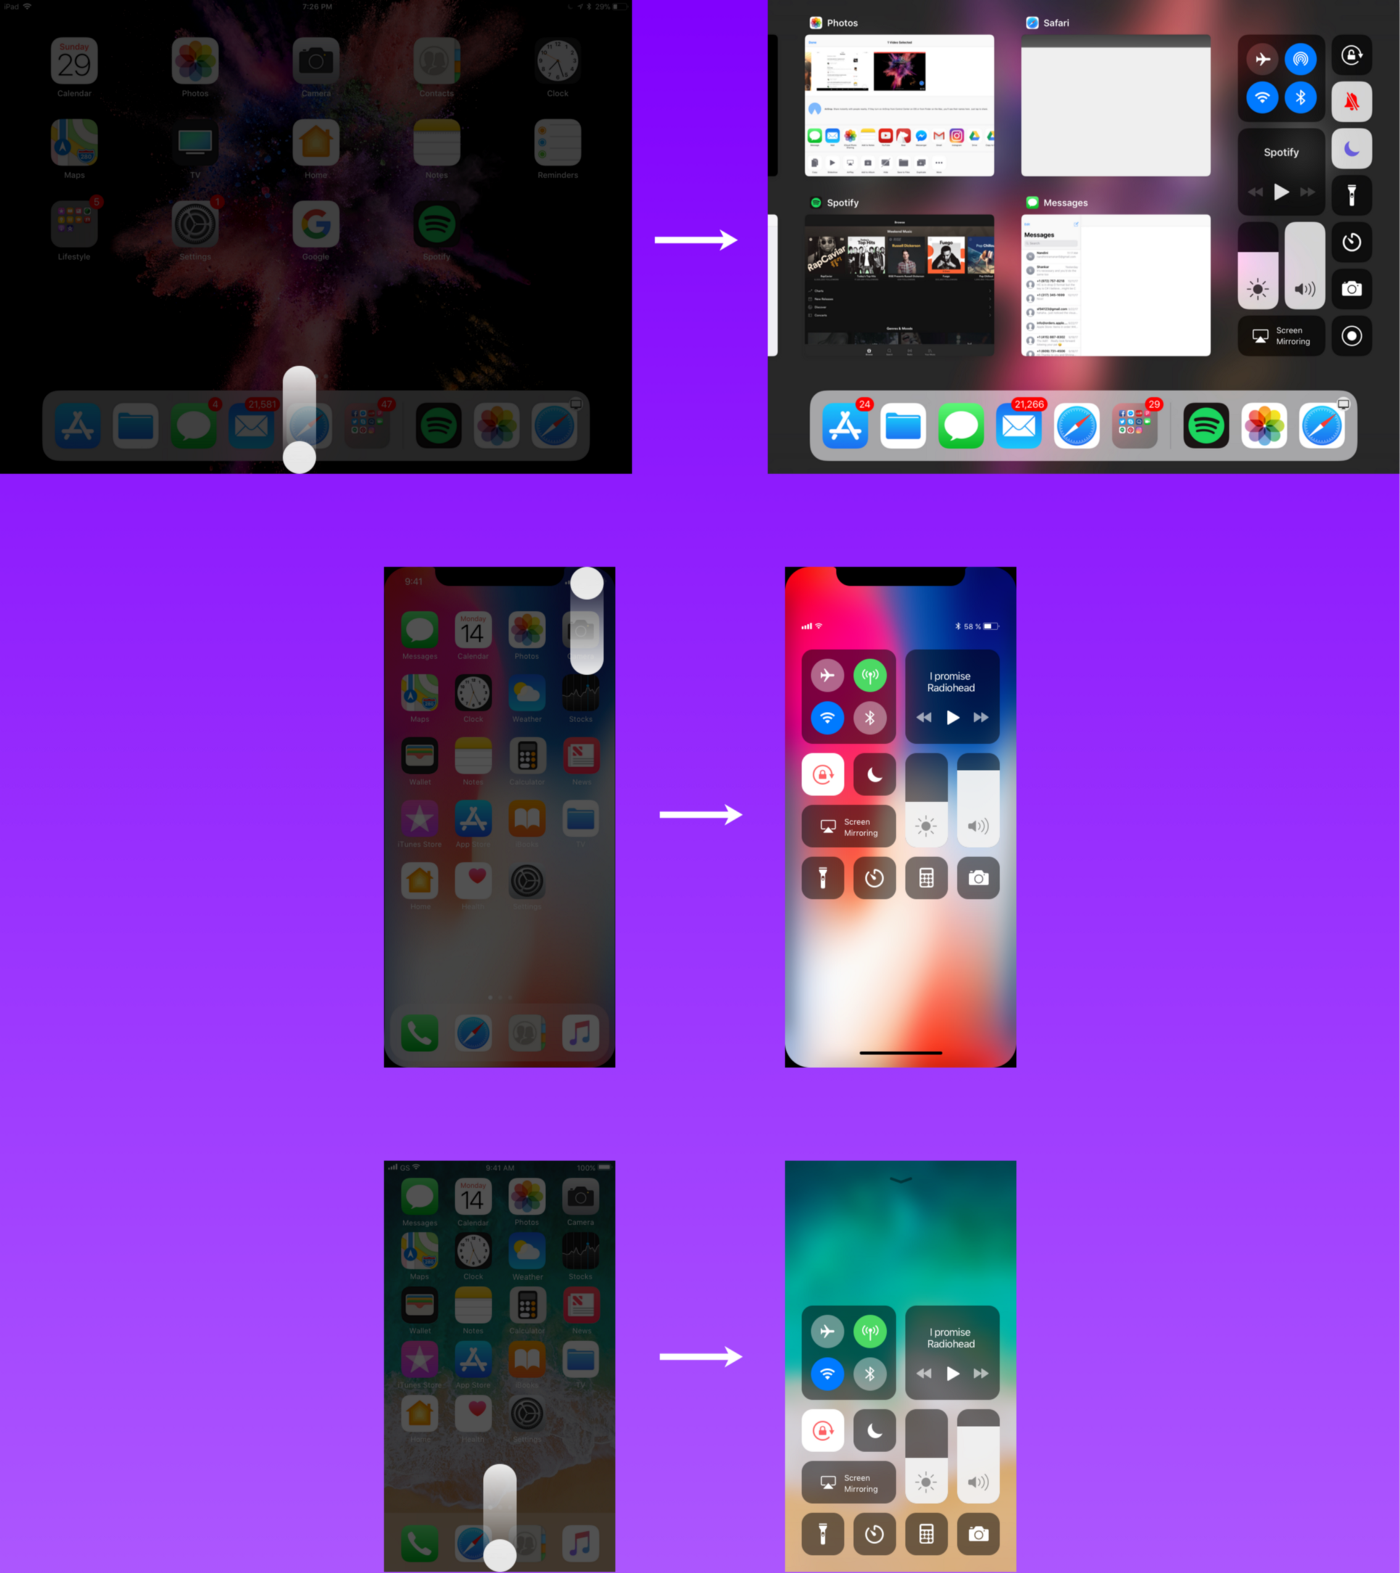 An analysis of the interactions on iOS 11 - UX Collective